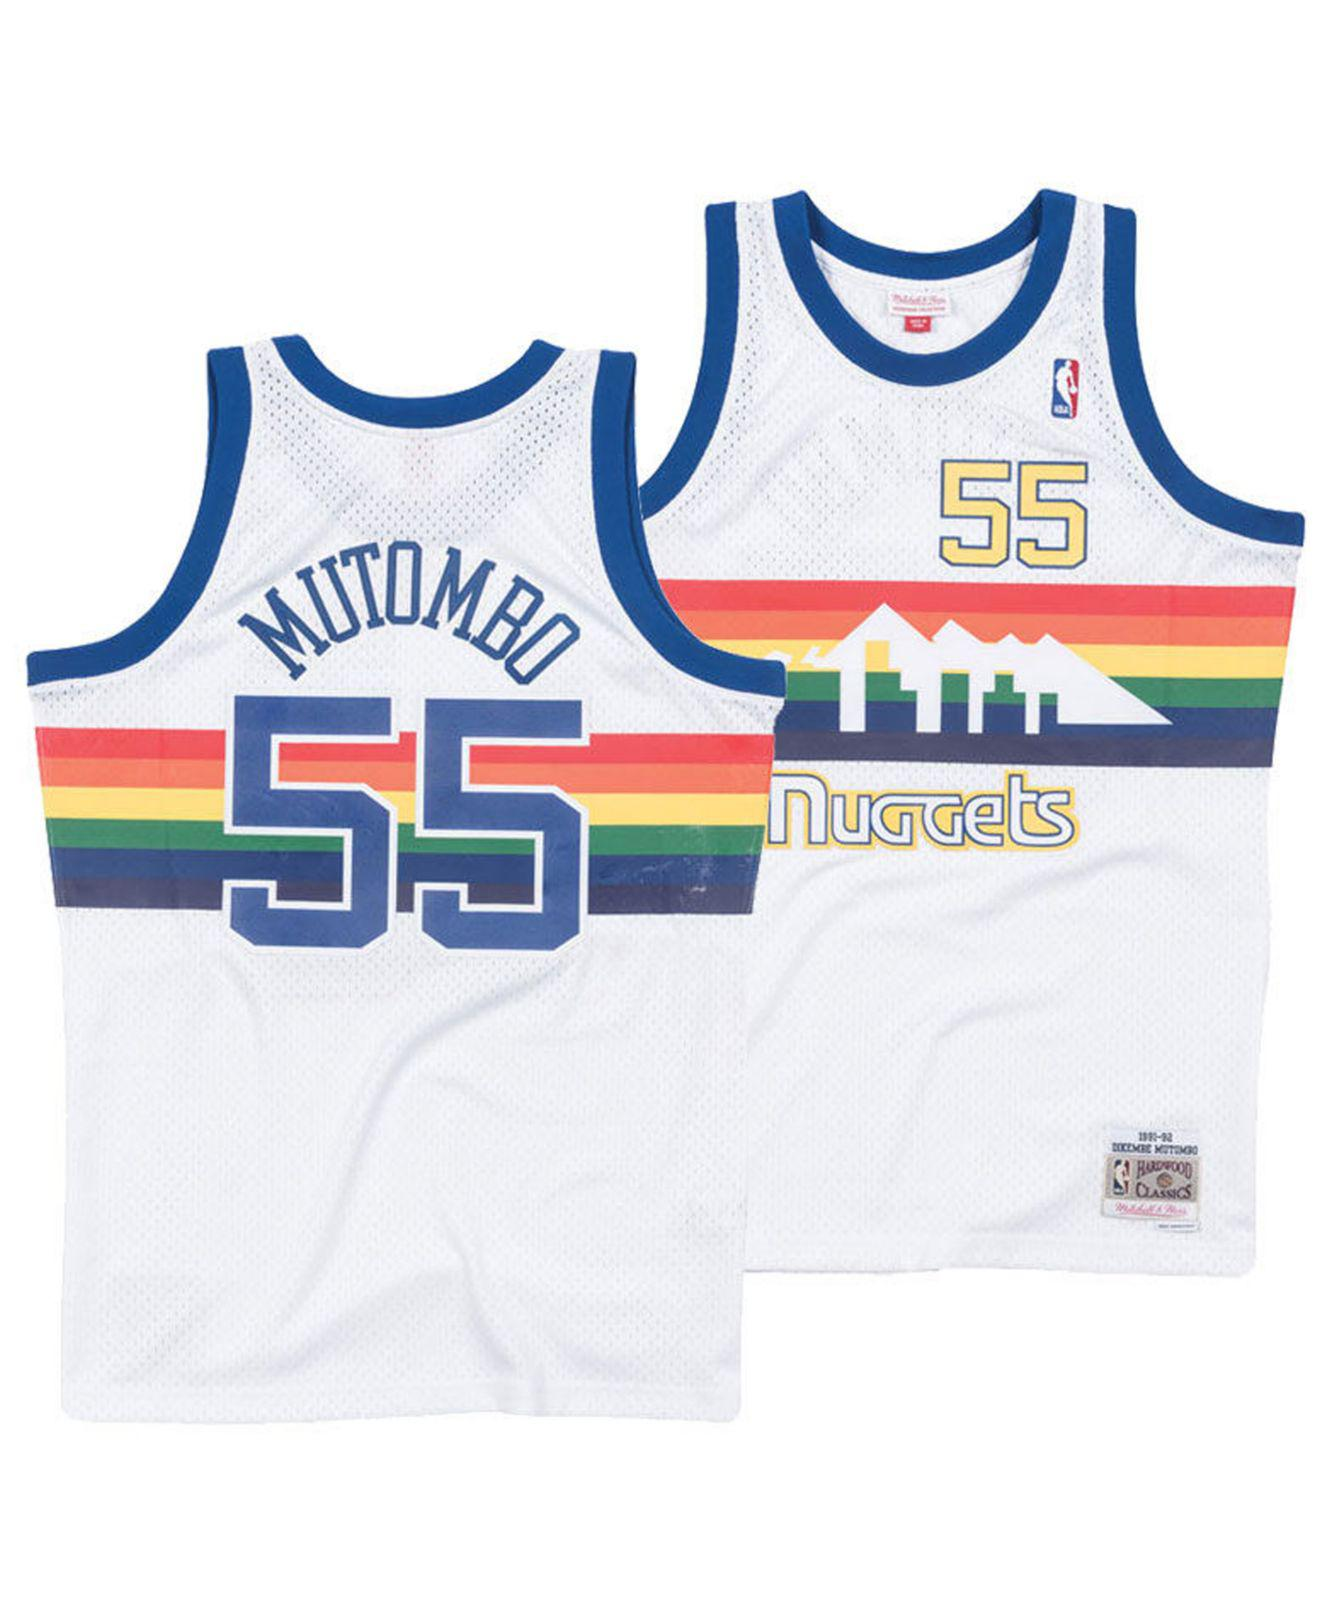 cheap for discount 8d517 431f8 Mitchell   Ness - White Dikembe Mutombo Denver Nuggets Hardwood Classic  Swingman Jersey for Men -. View fullscreen